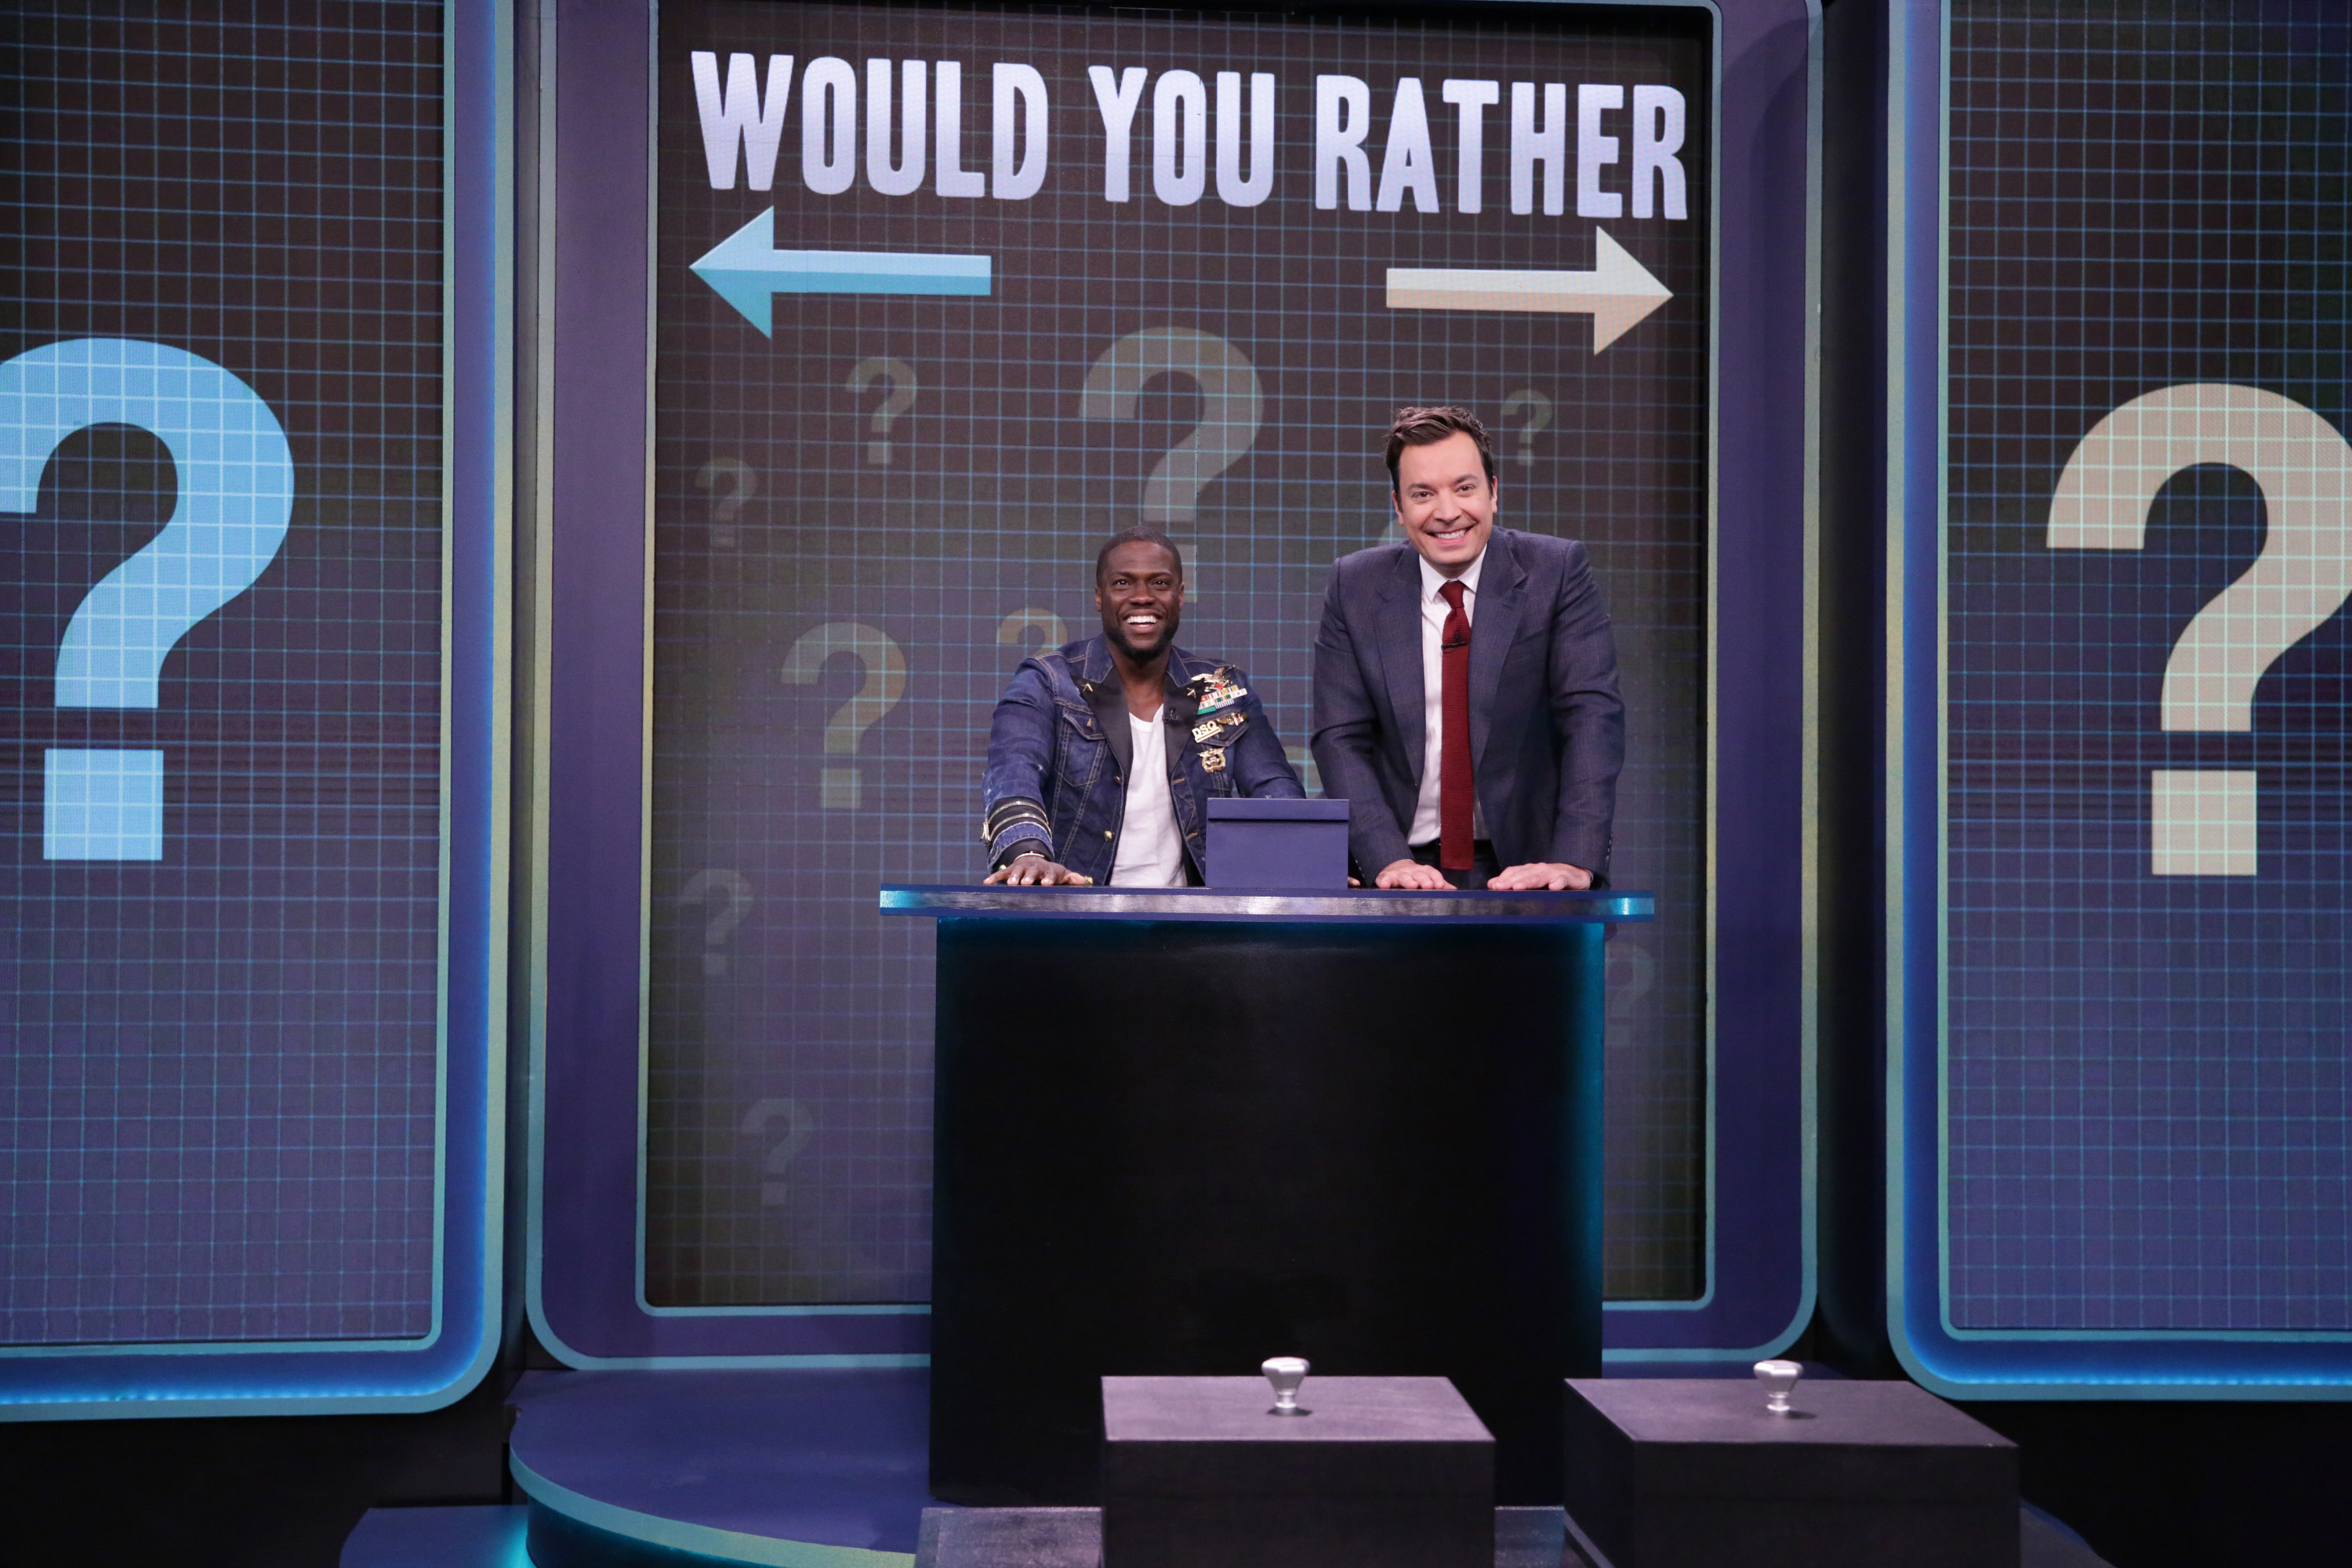 THE TONIGHT SHOW STARRING JIMMY FALLON -- Episode 0552 -- Pictured: (l-r) Actor Kevin Hart and host Jimmy Fallon play 'Would You Rather' on October 11, 2016 -- (Photo by: Andrew Lipovsky/NBC/NBCU Photo Bank via Getty Images)